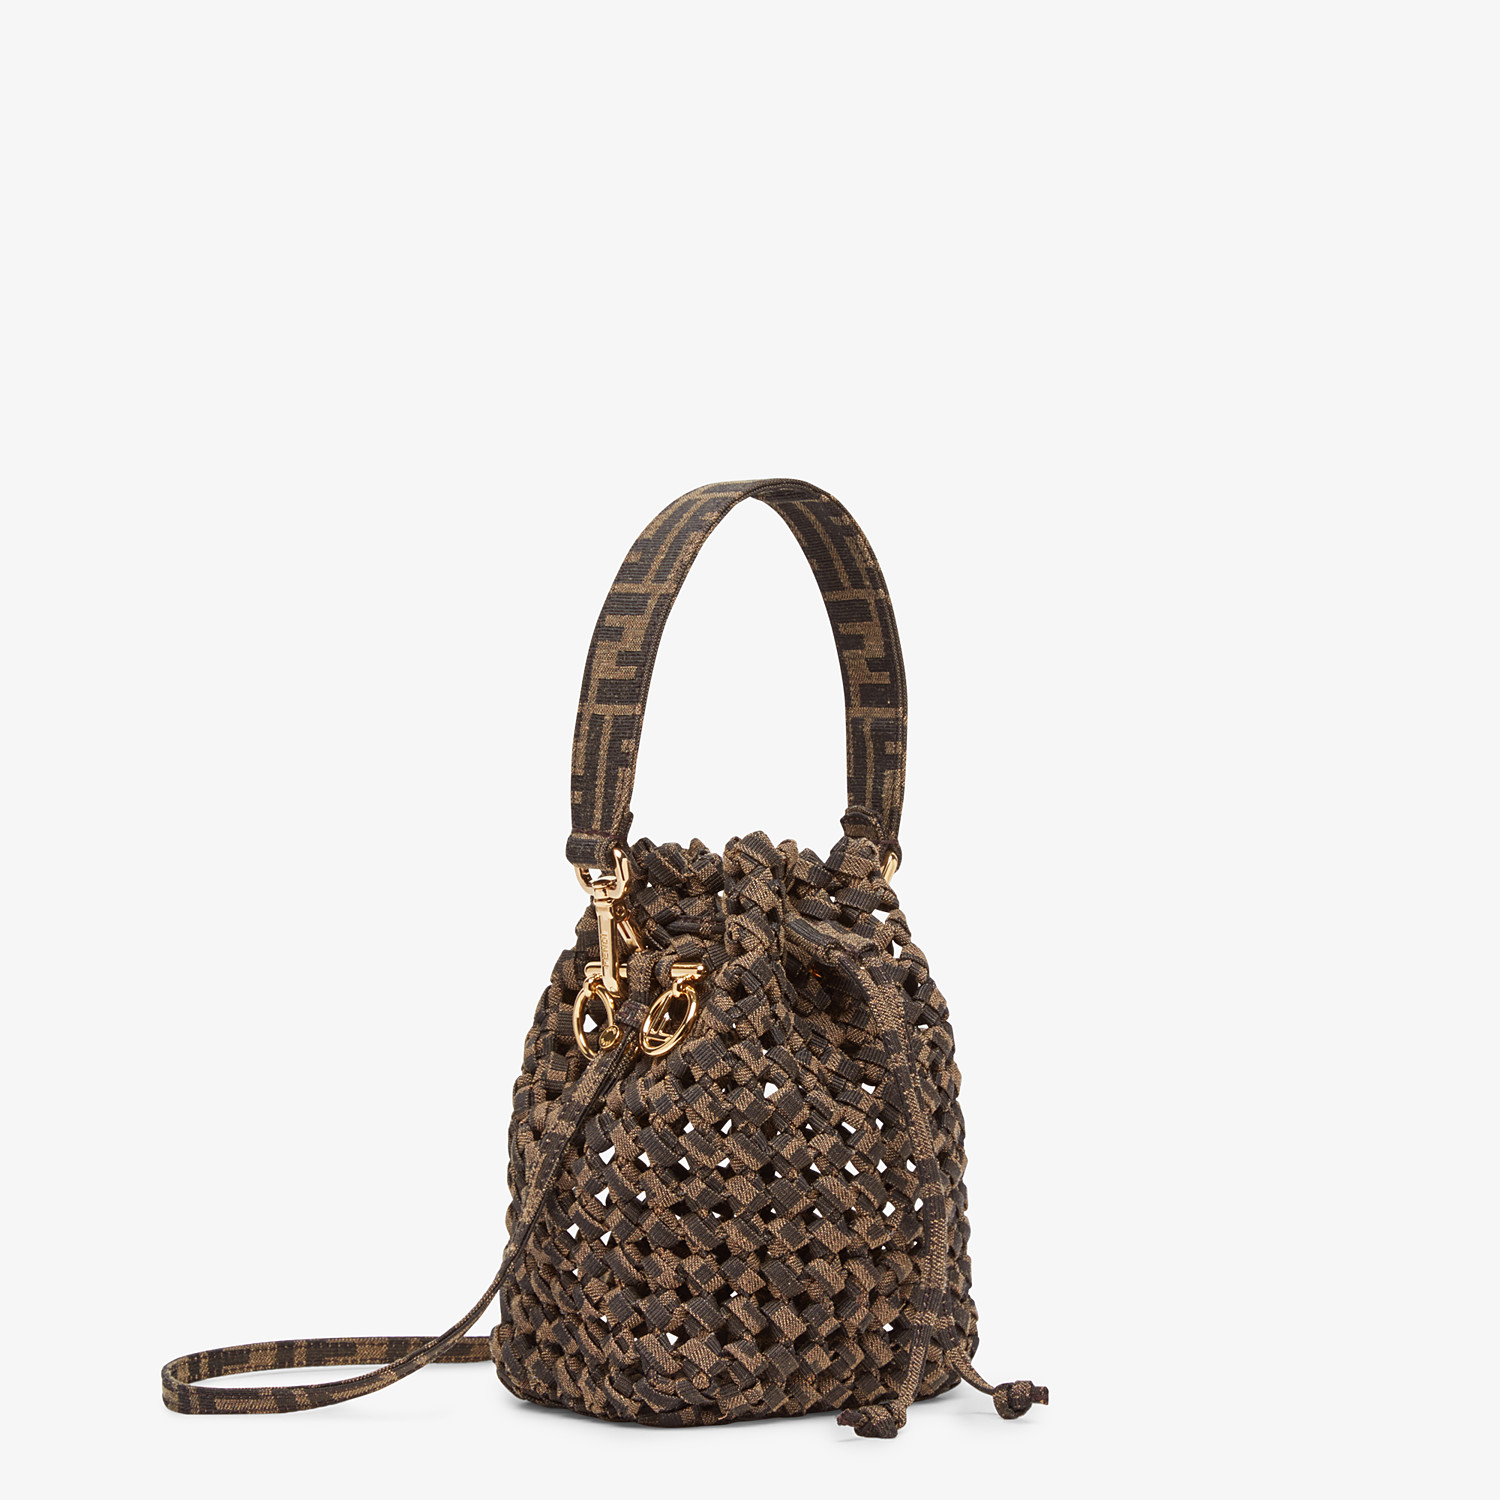 FENDI MON TRESOR - Jacquard fabric interlace mini-bag - view 2 detail